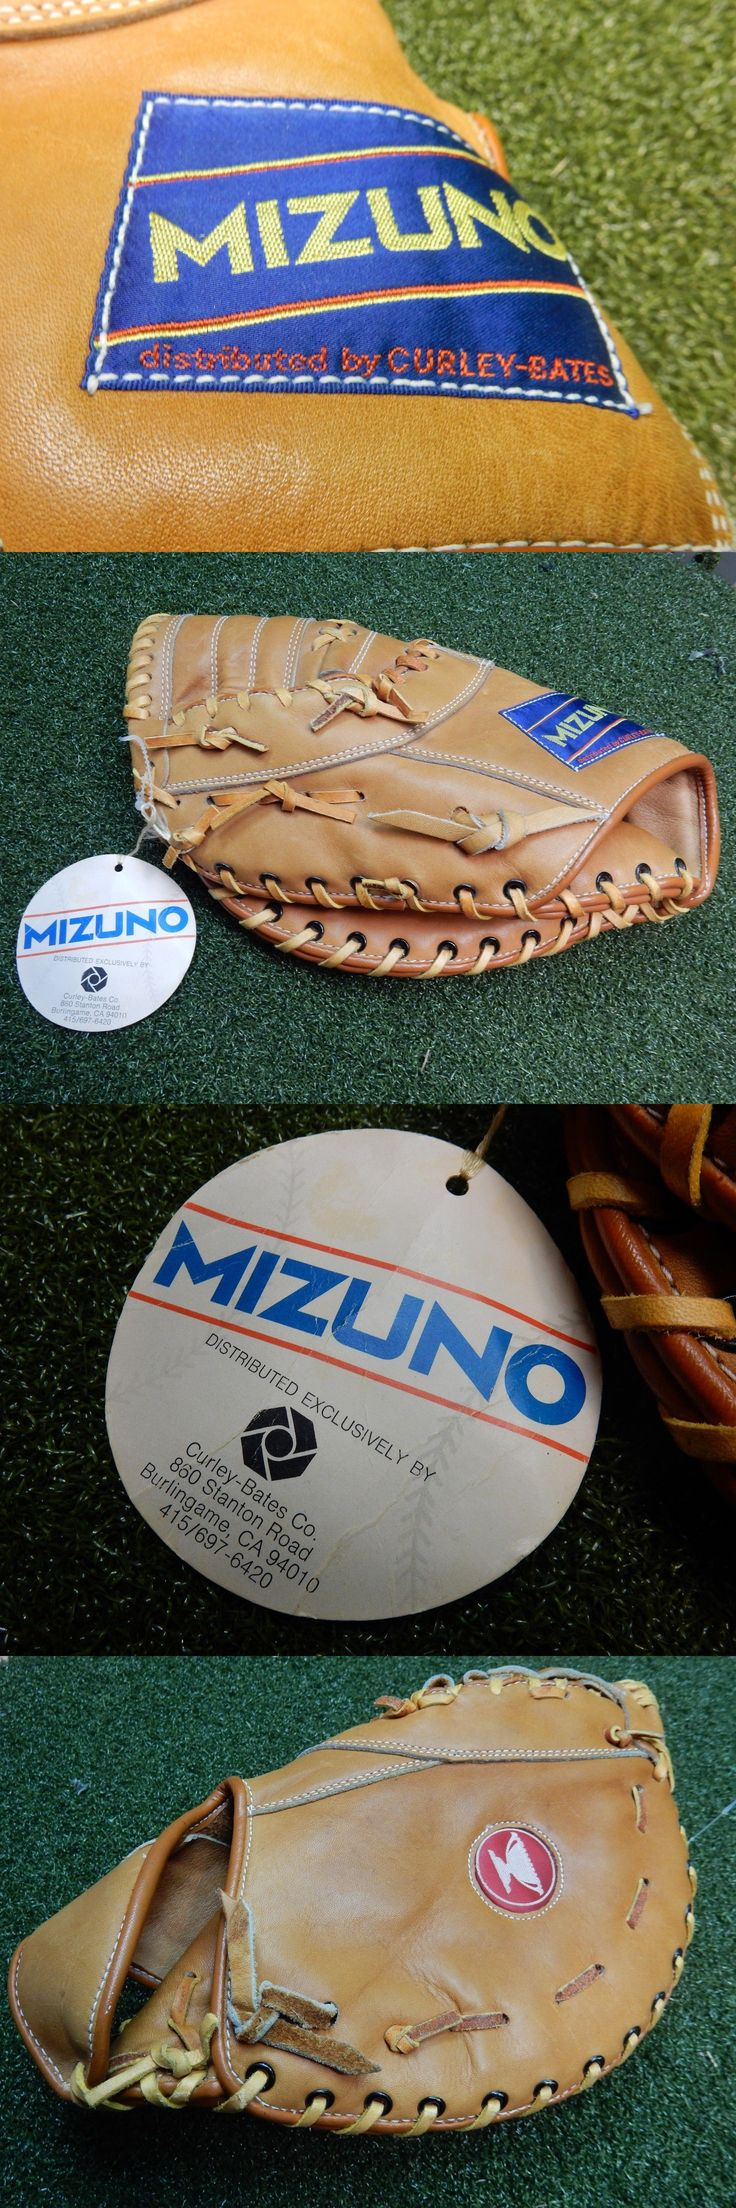 Gloves-Baseball 50126: New! Rare Vintage! 1980S Mizuno Mt1070 Lht First Base Glove Mitt By Curley Bates -> BUY IT NOW ONLY: $54.77 on eBay!